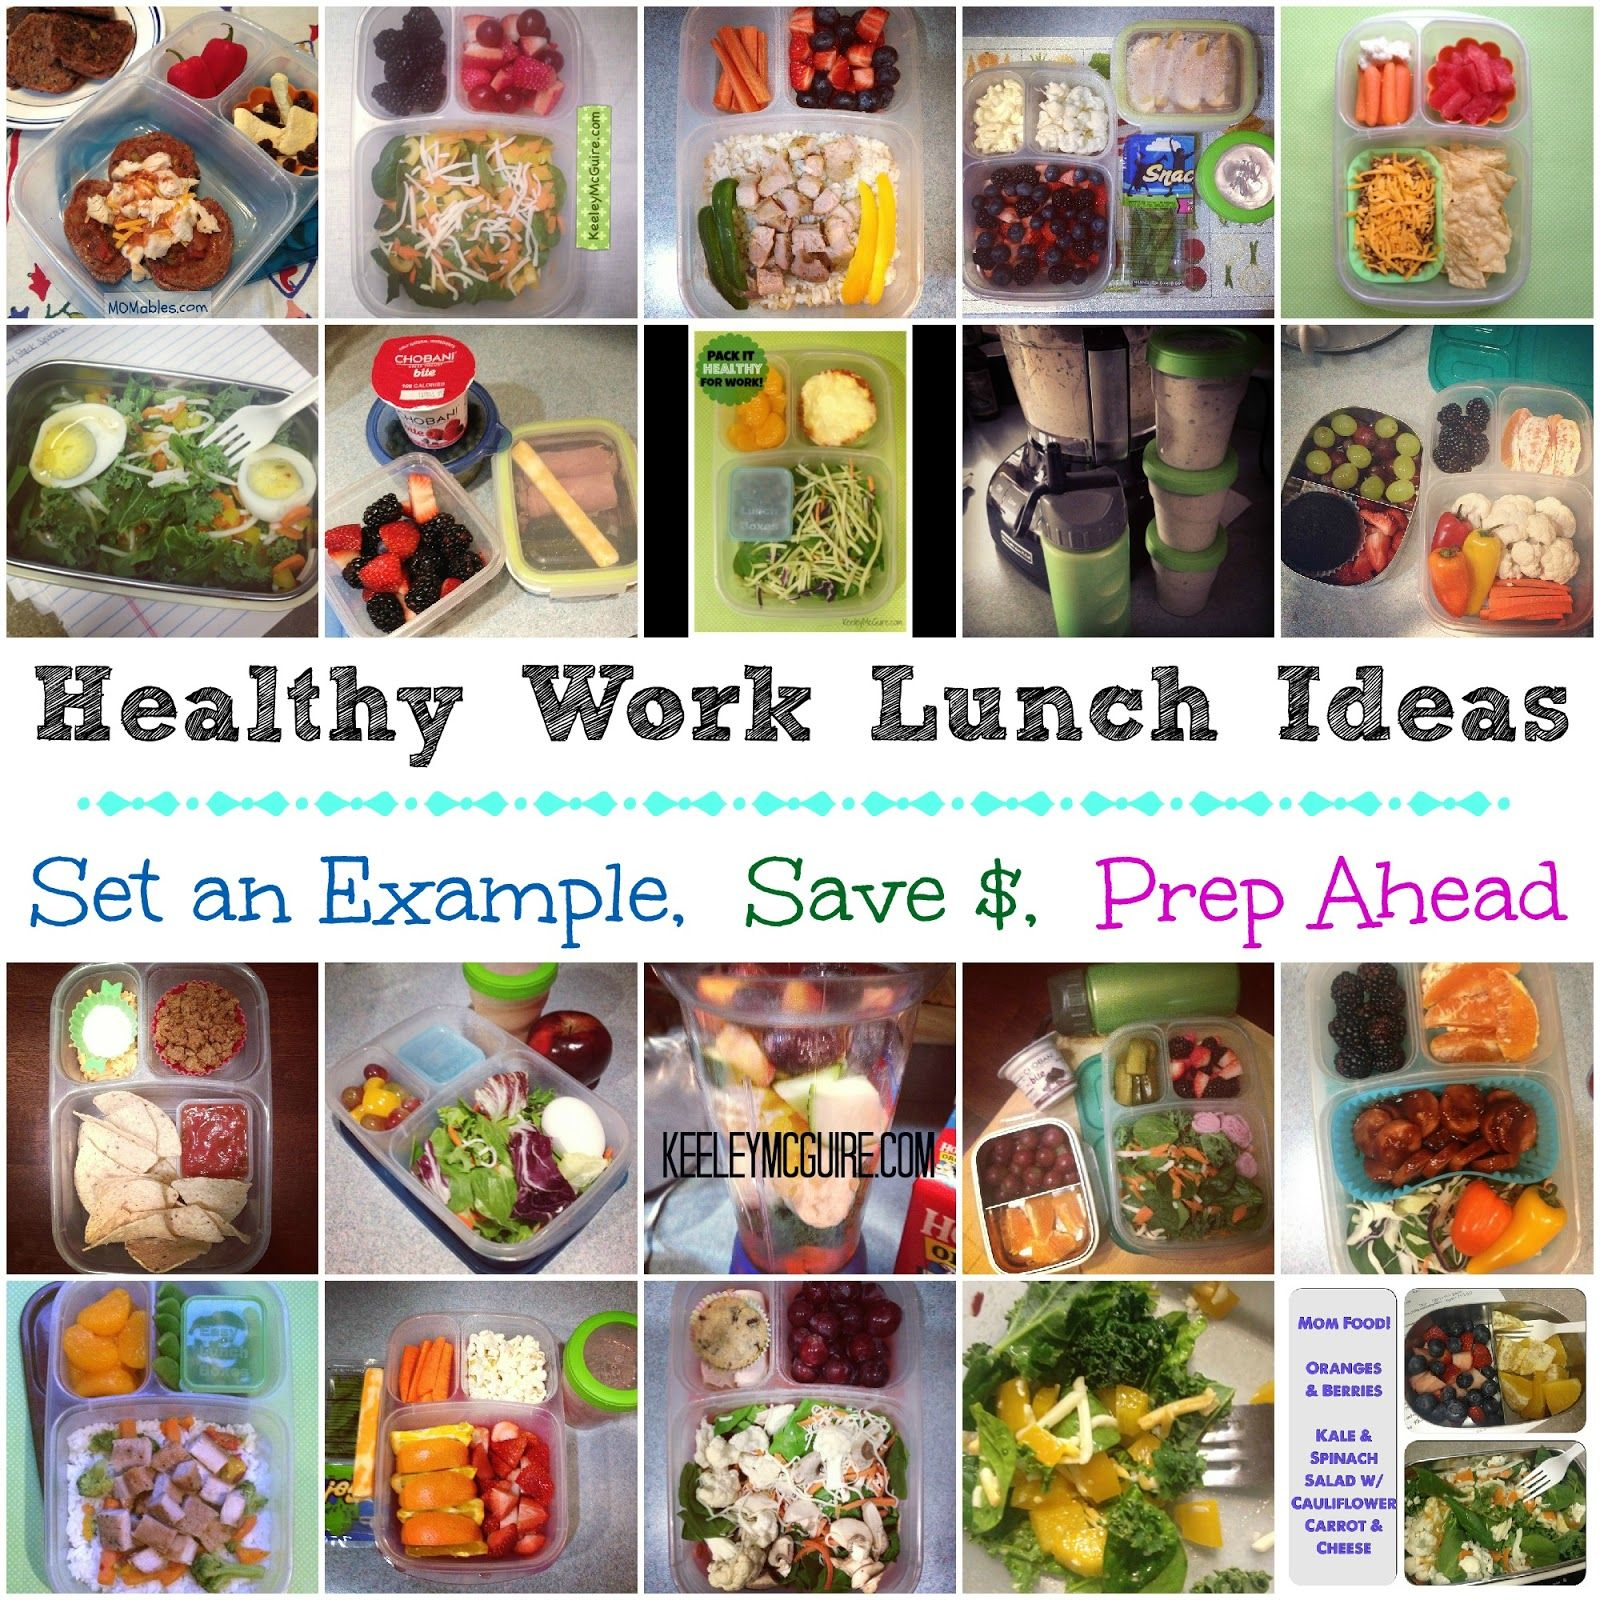 Keeley mcguire lunch made easy healthy work lunches for mom or keeley mcguire lunch made easy healthy work lunches for mom or dad forumfinder Images